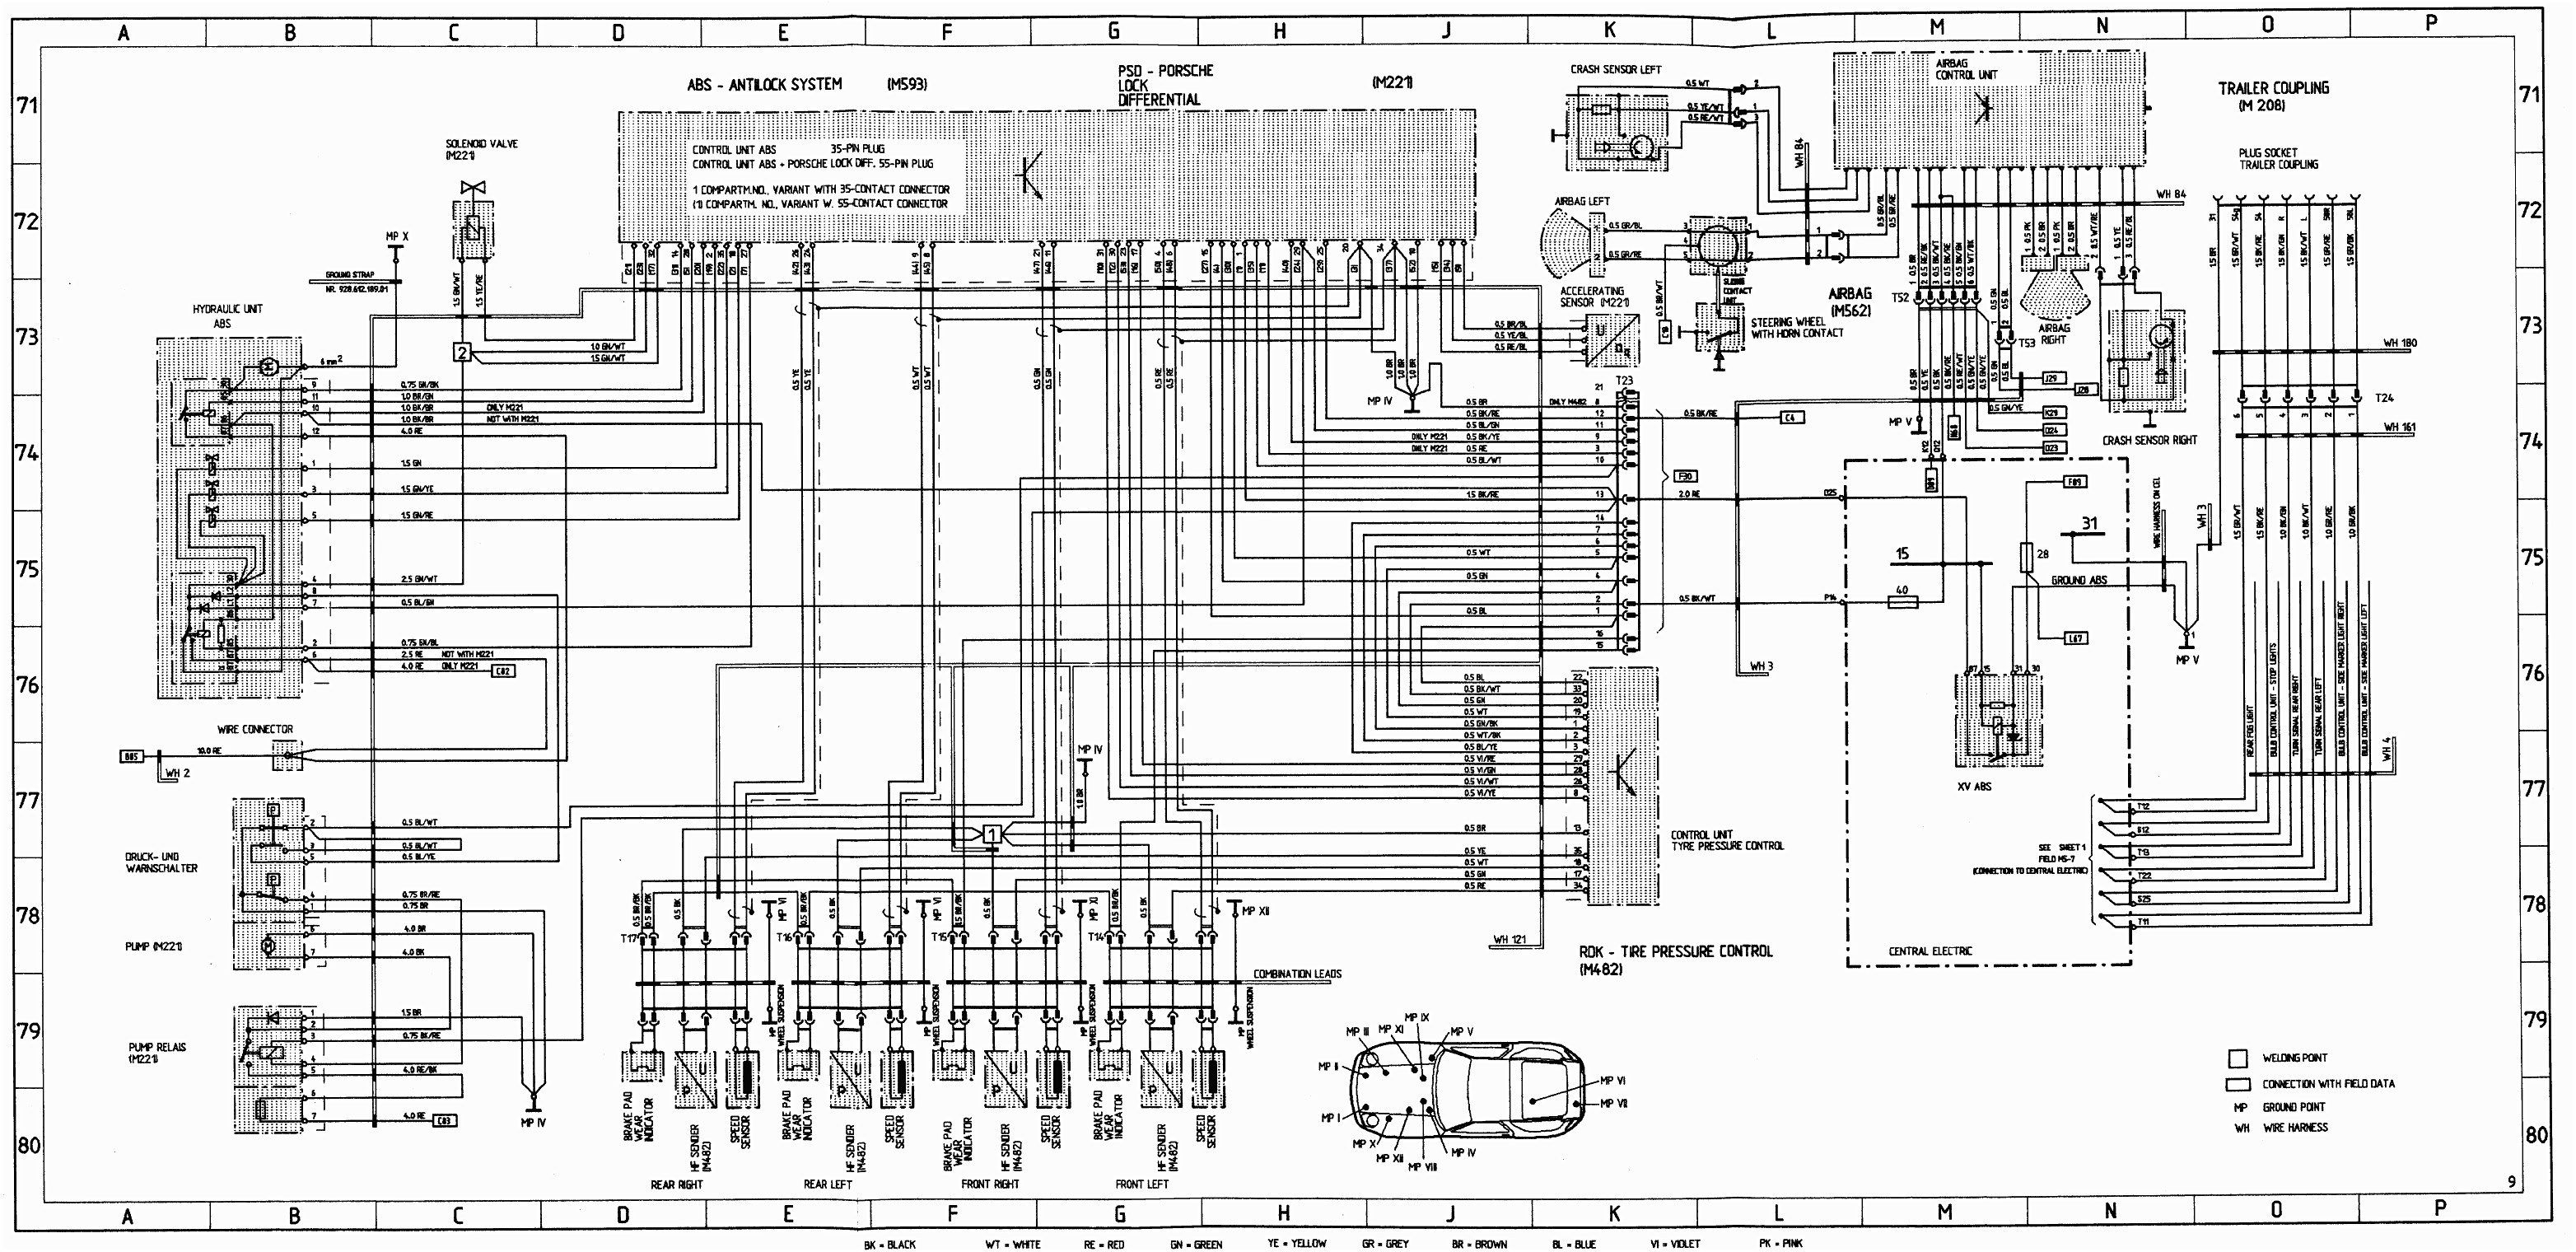 20 Simple Automotive Wiring Diagrams References ,  https://bacamajalah.com/20-simple-automotive-wiring-diagr… | Electrical  wiring diagram, Bmw e46, Electrical wiringPinterest